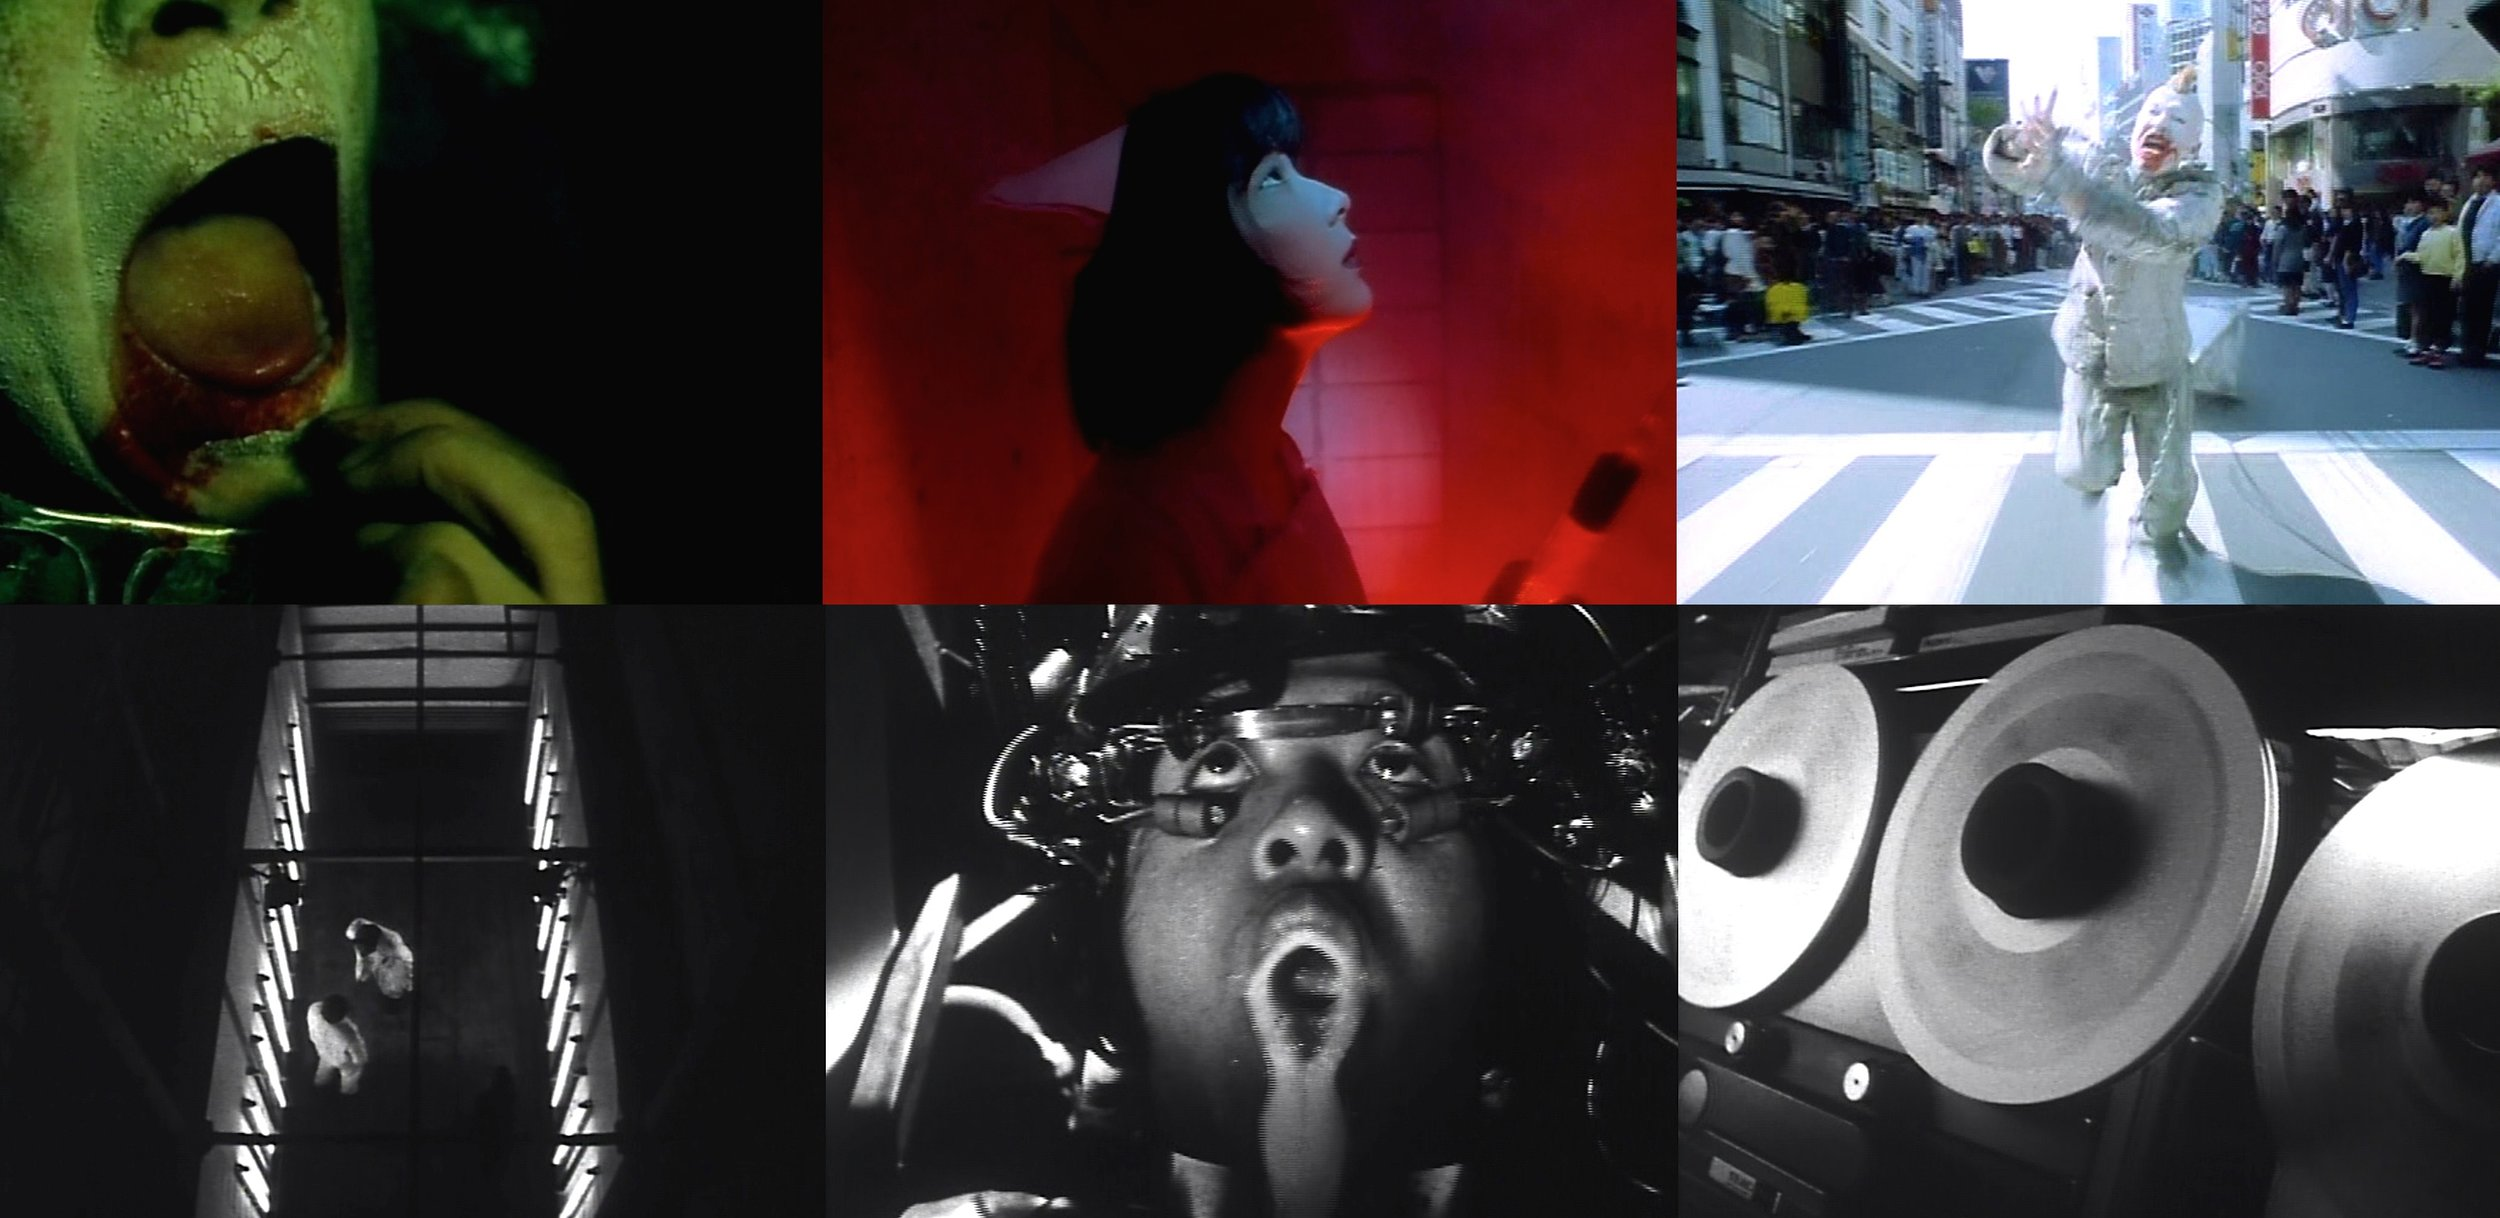 Top row: Images from Fukui's brilliantly hyper-active  964 Pinocchio  [1991] • Bottom row: Examples of the beautifully grainy black and white images of Fukui's follow-up  Rubber's Lover  [1996]